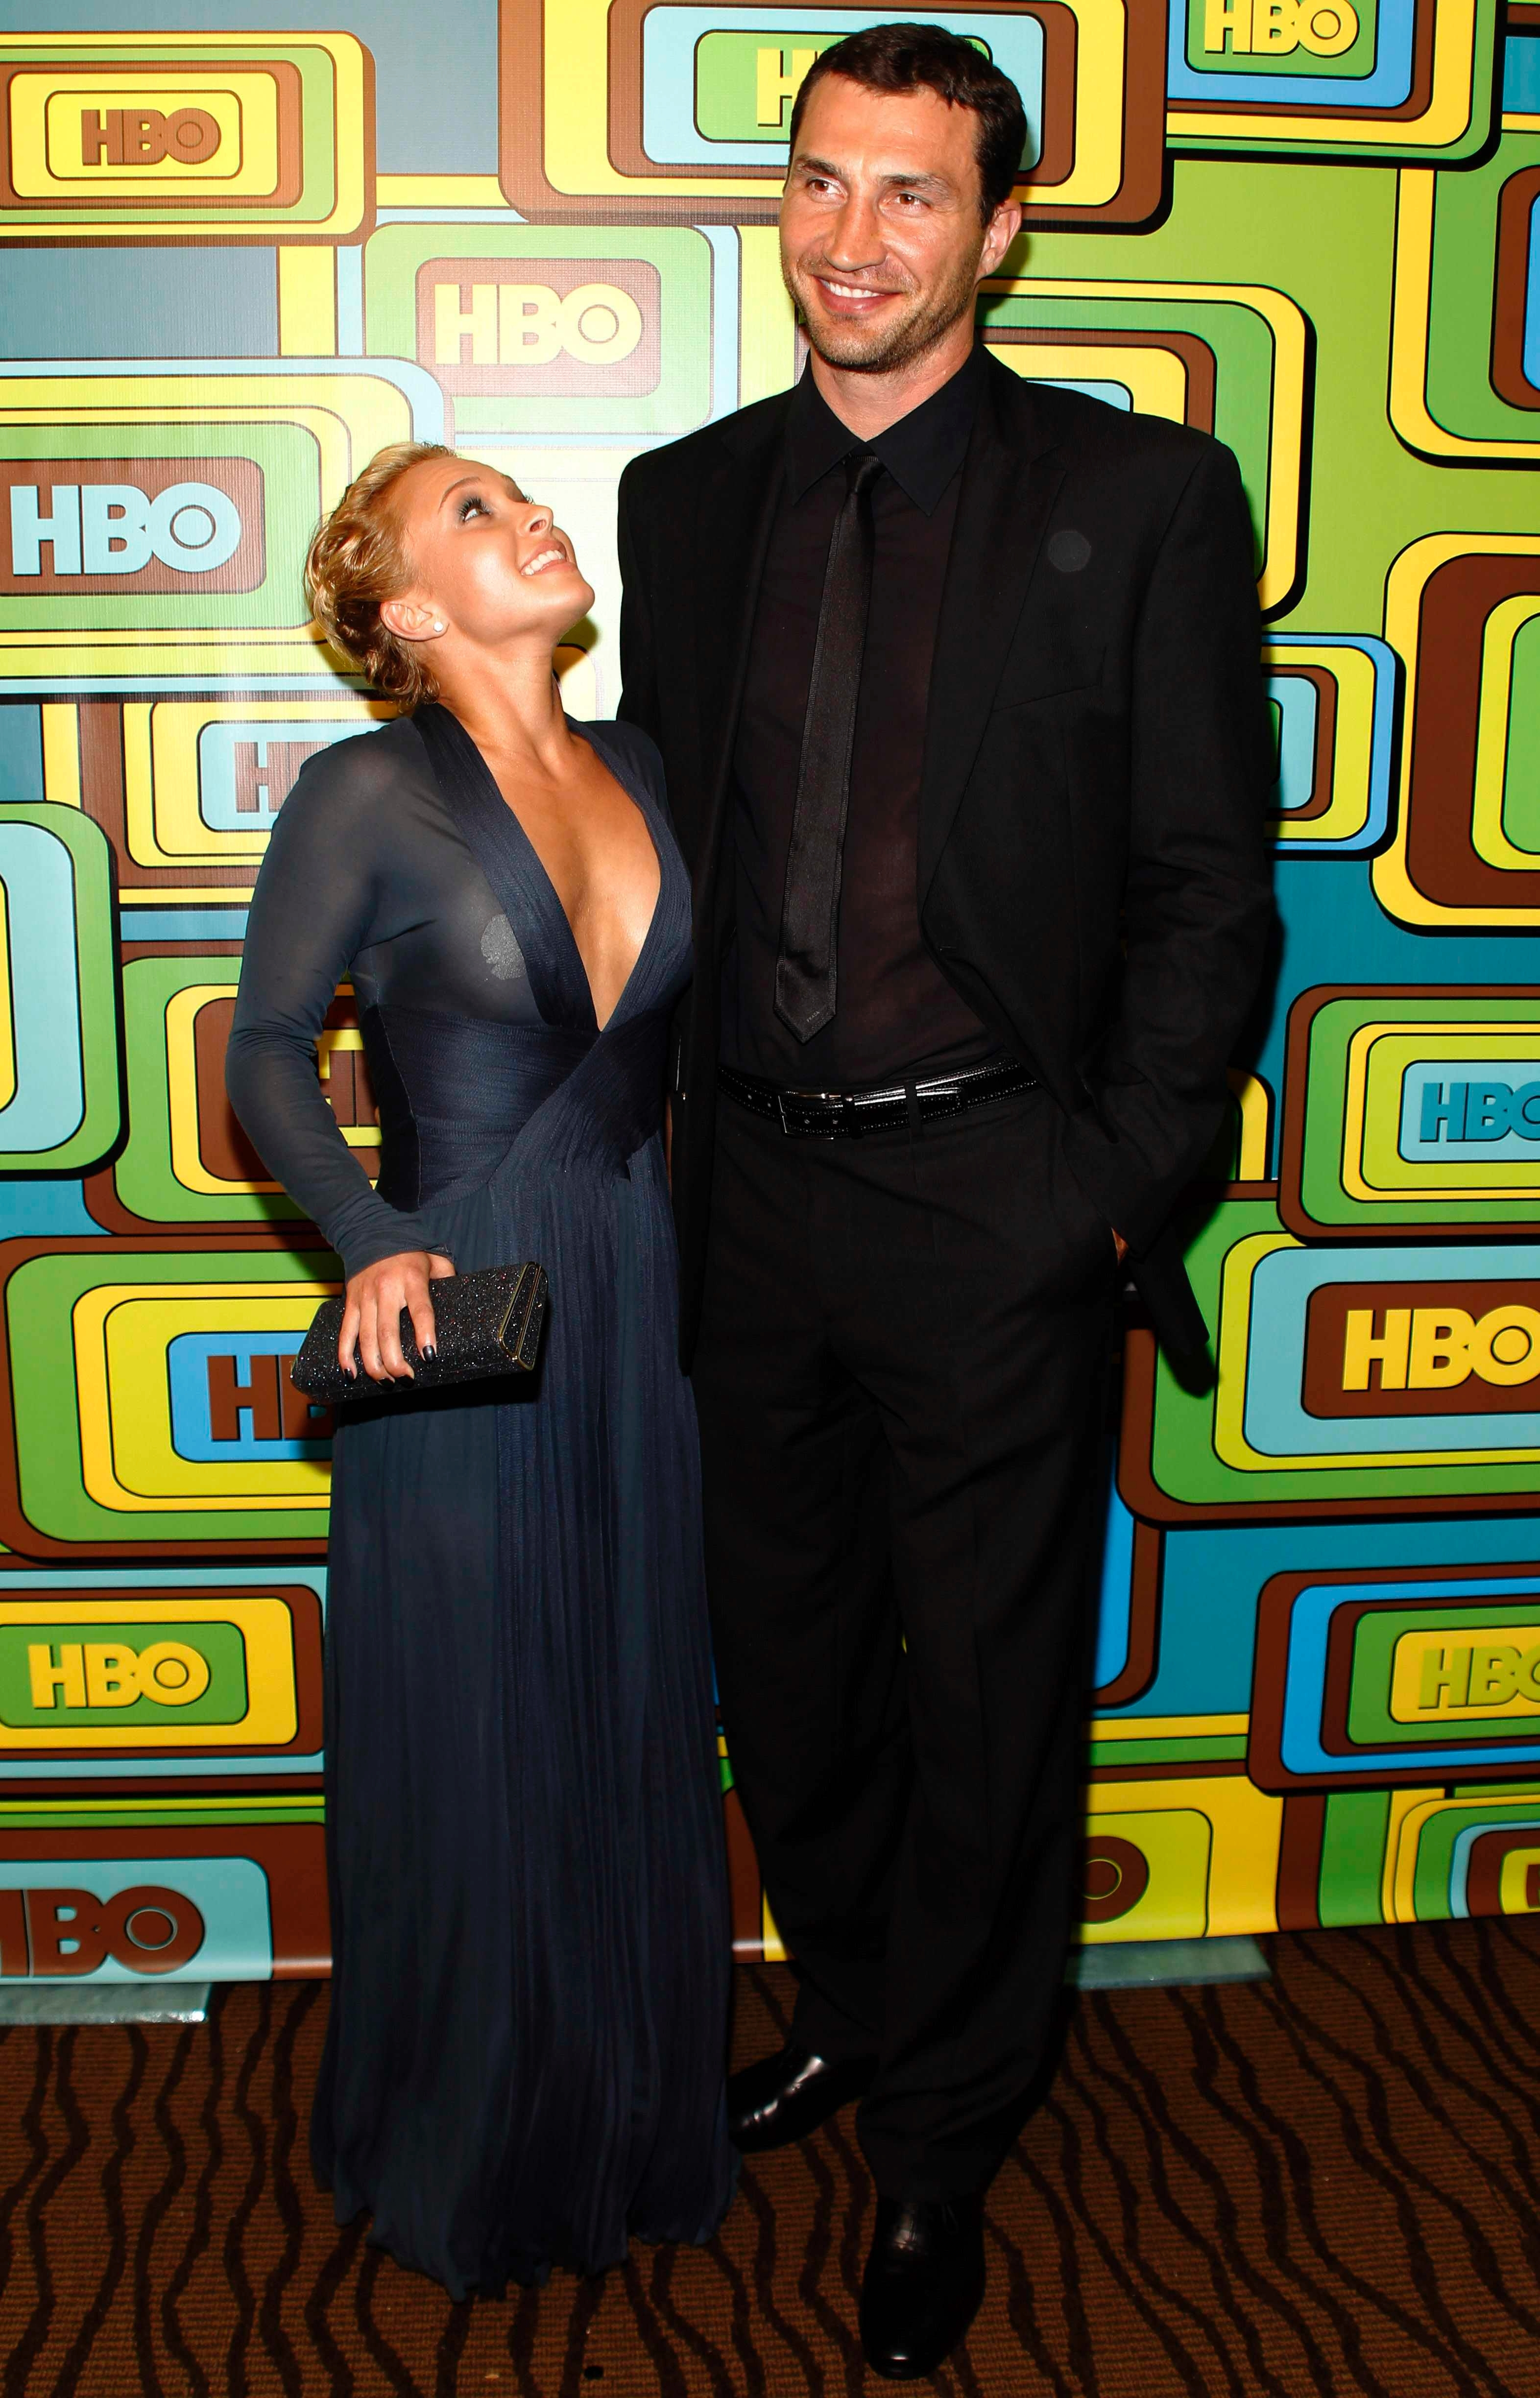 reveal guess the tall celeb guy Hayden Panettiere and Wladimir Klitschko